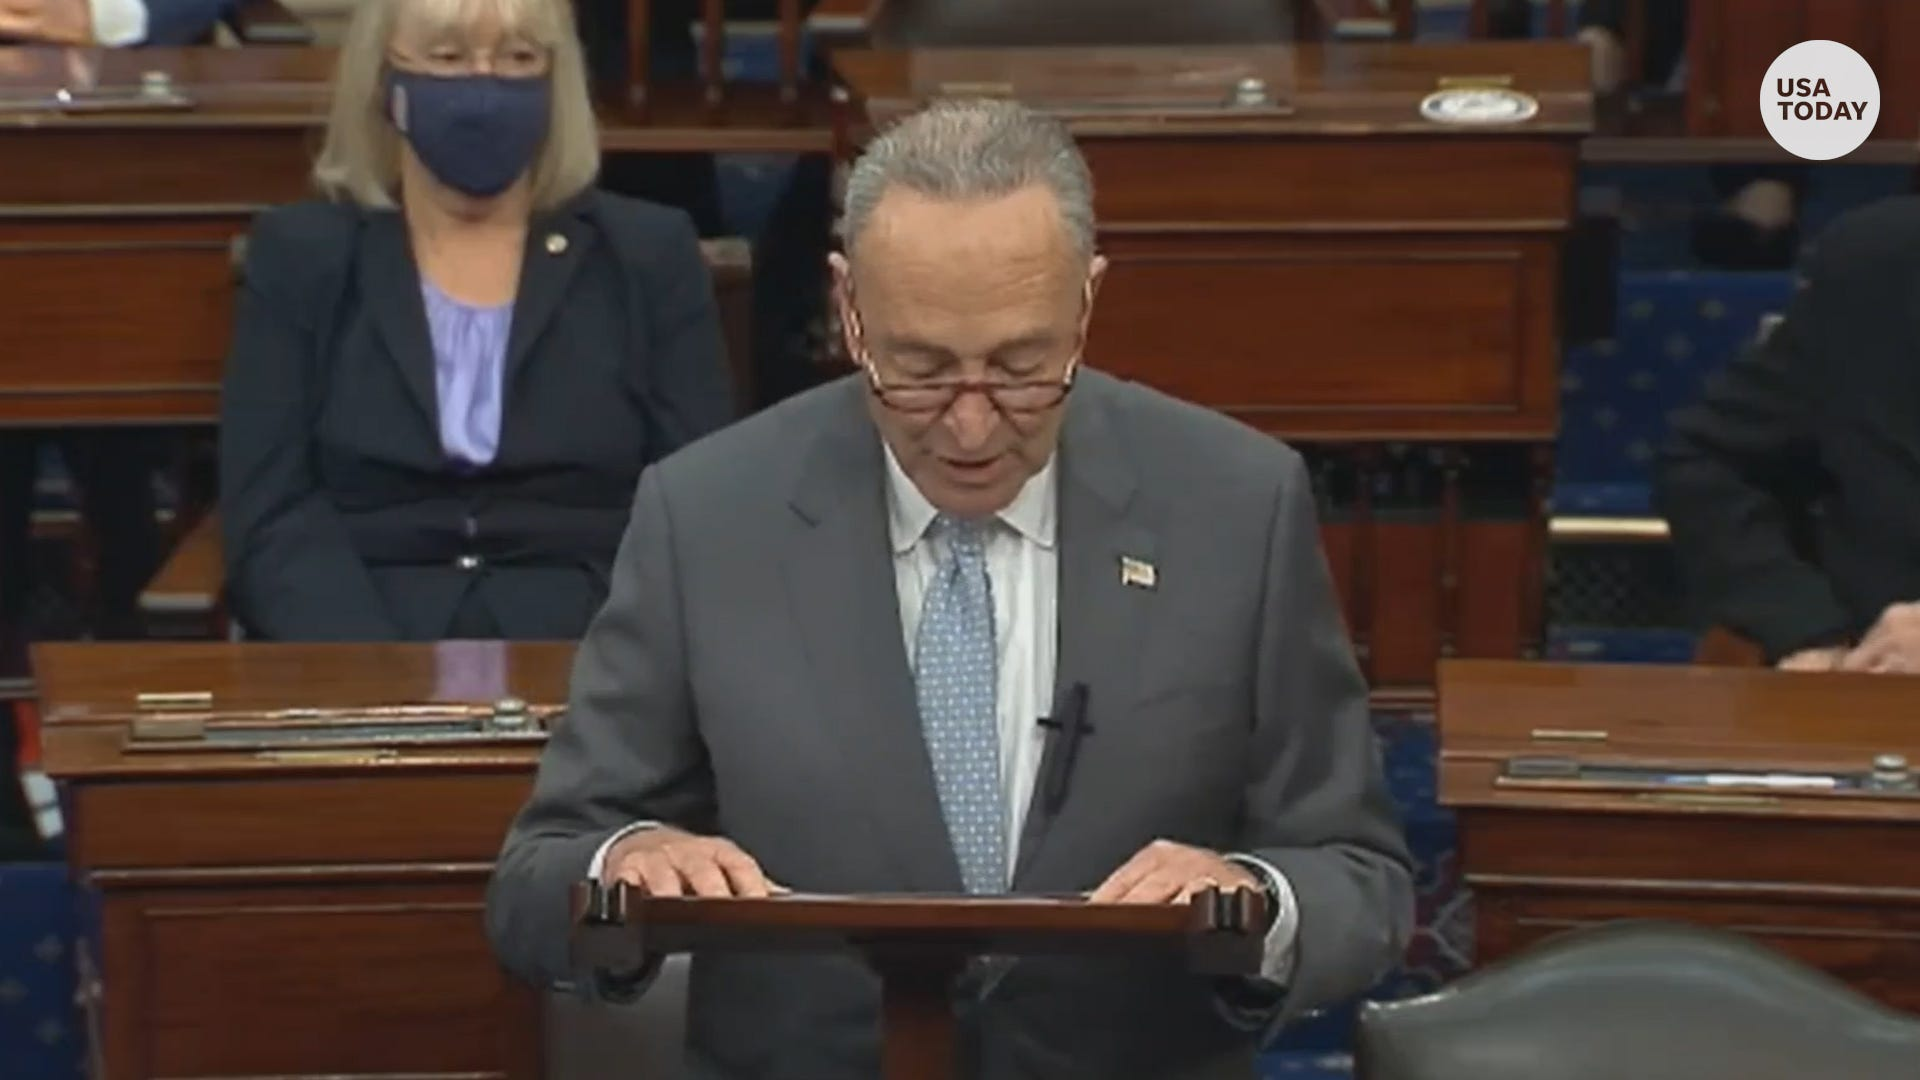 Schumer slams GOP advancing Amy Coney Barrett's confirmation process so close to election